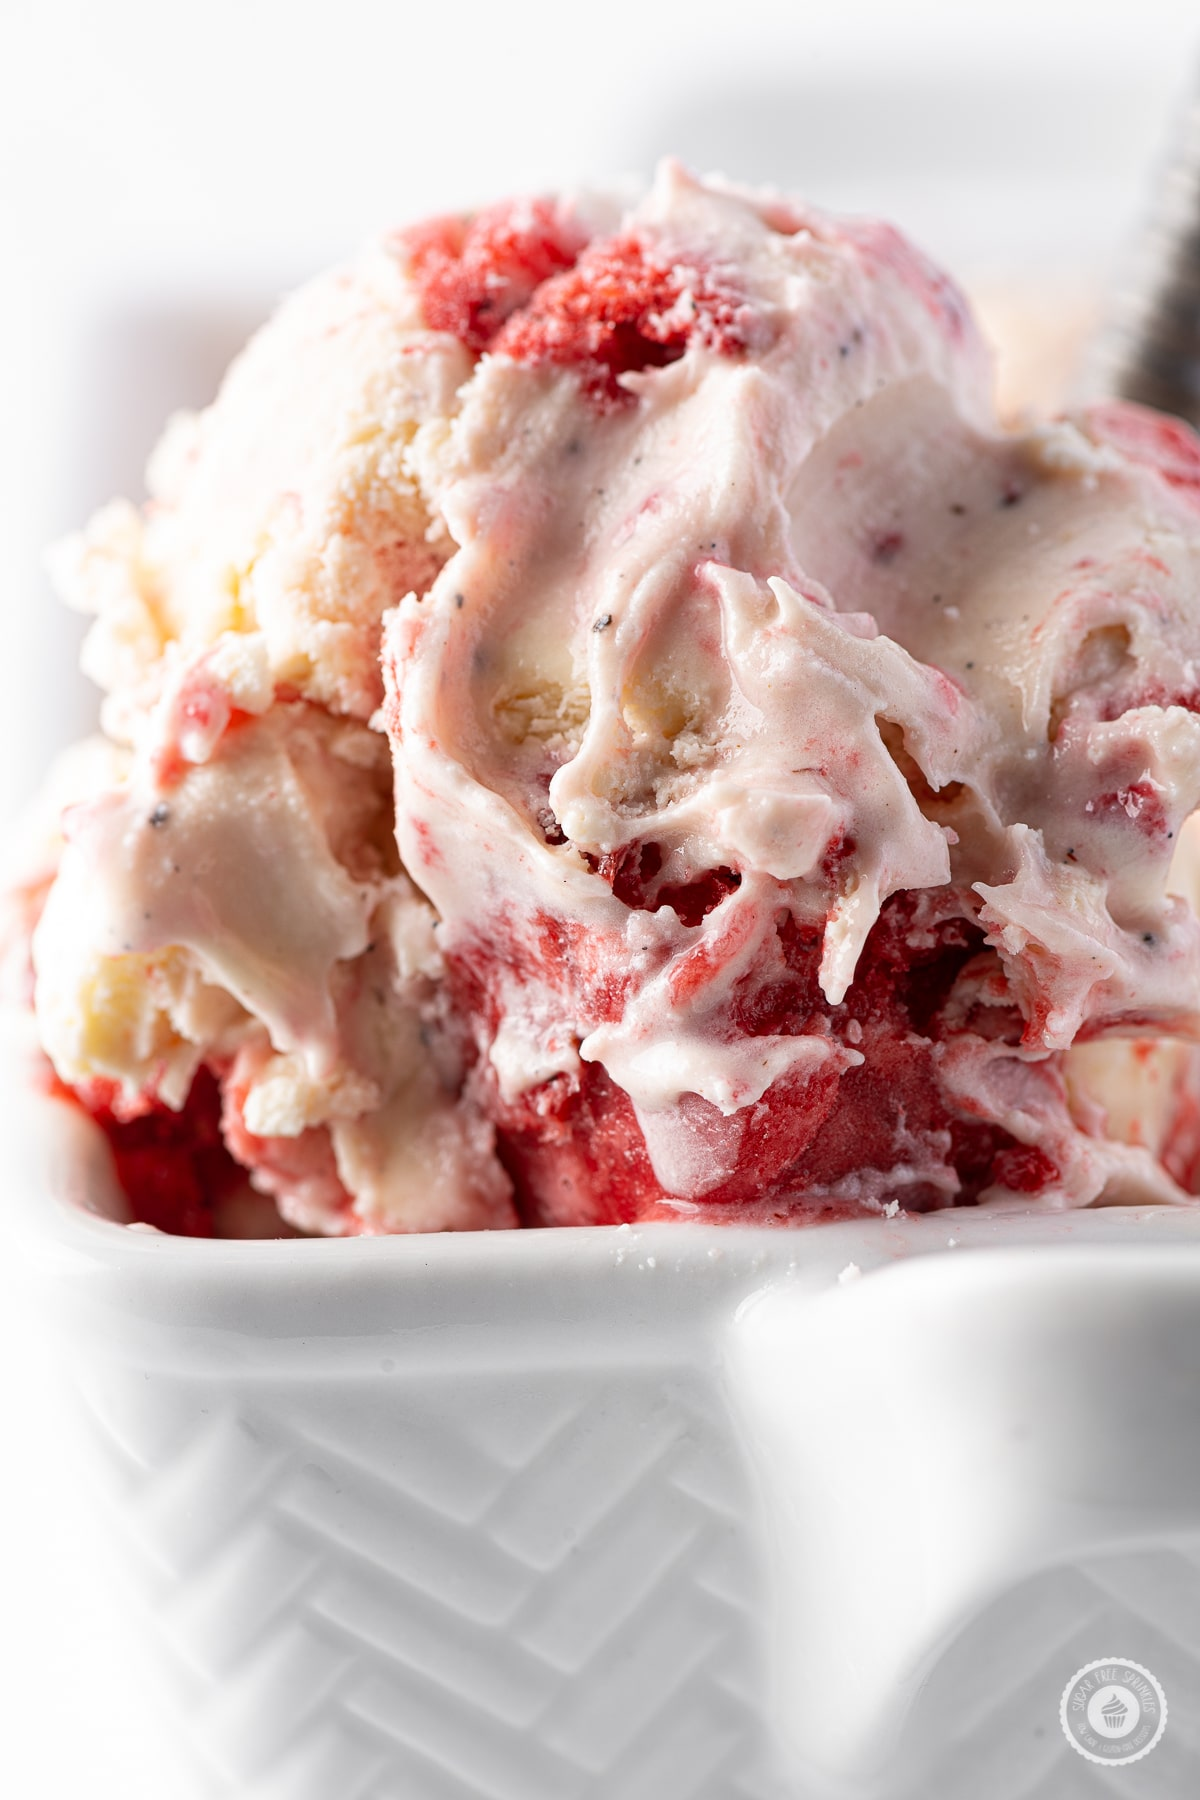 A close up photograph of a scoop of strawberry ice cream with frozen bits of strawberries and chunks of cheesecake.